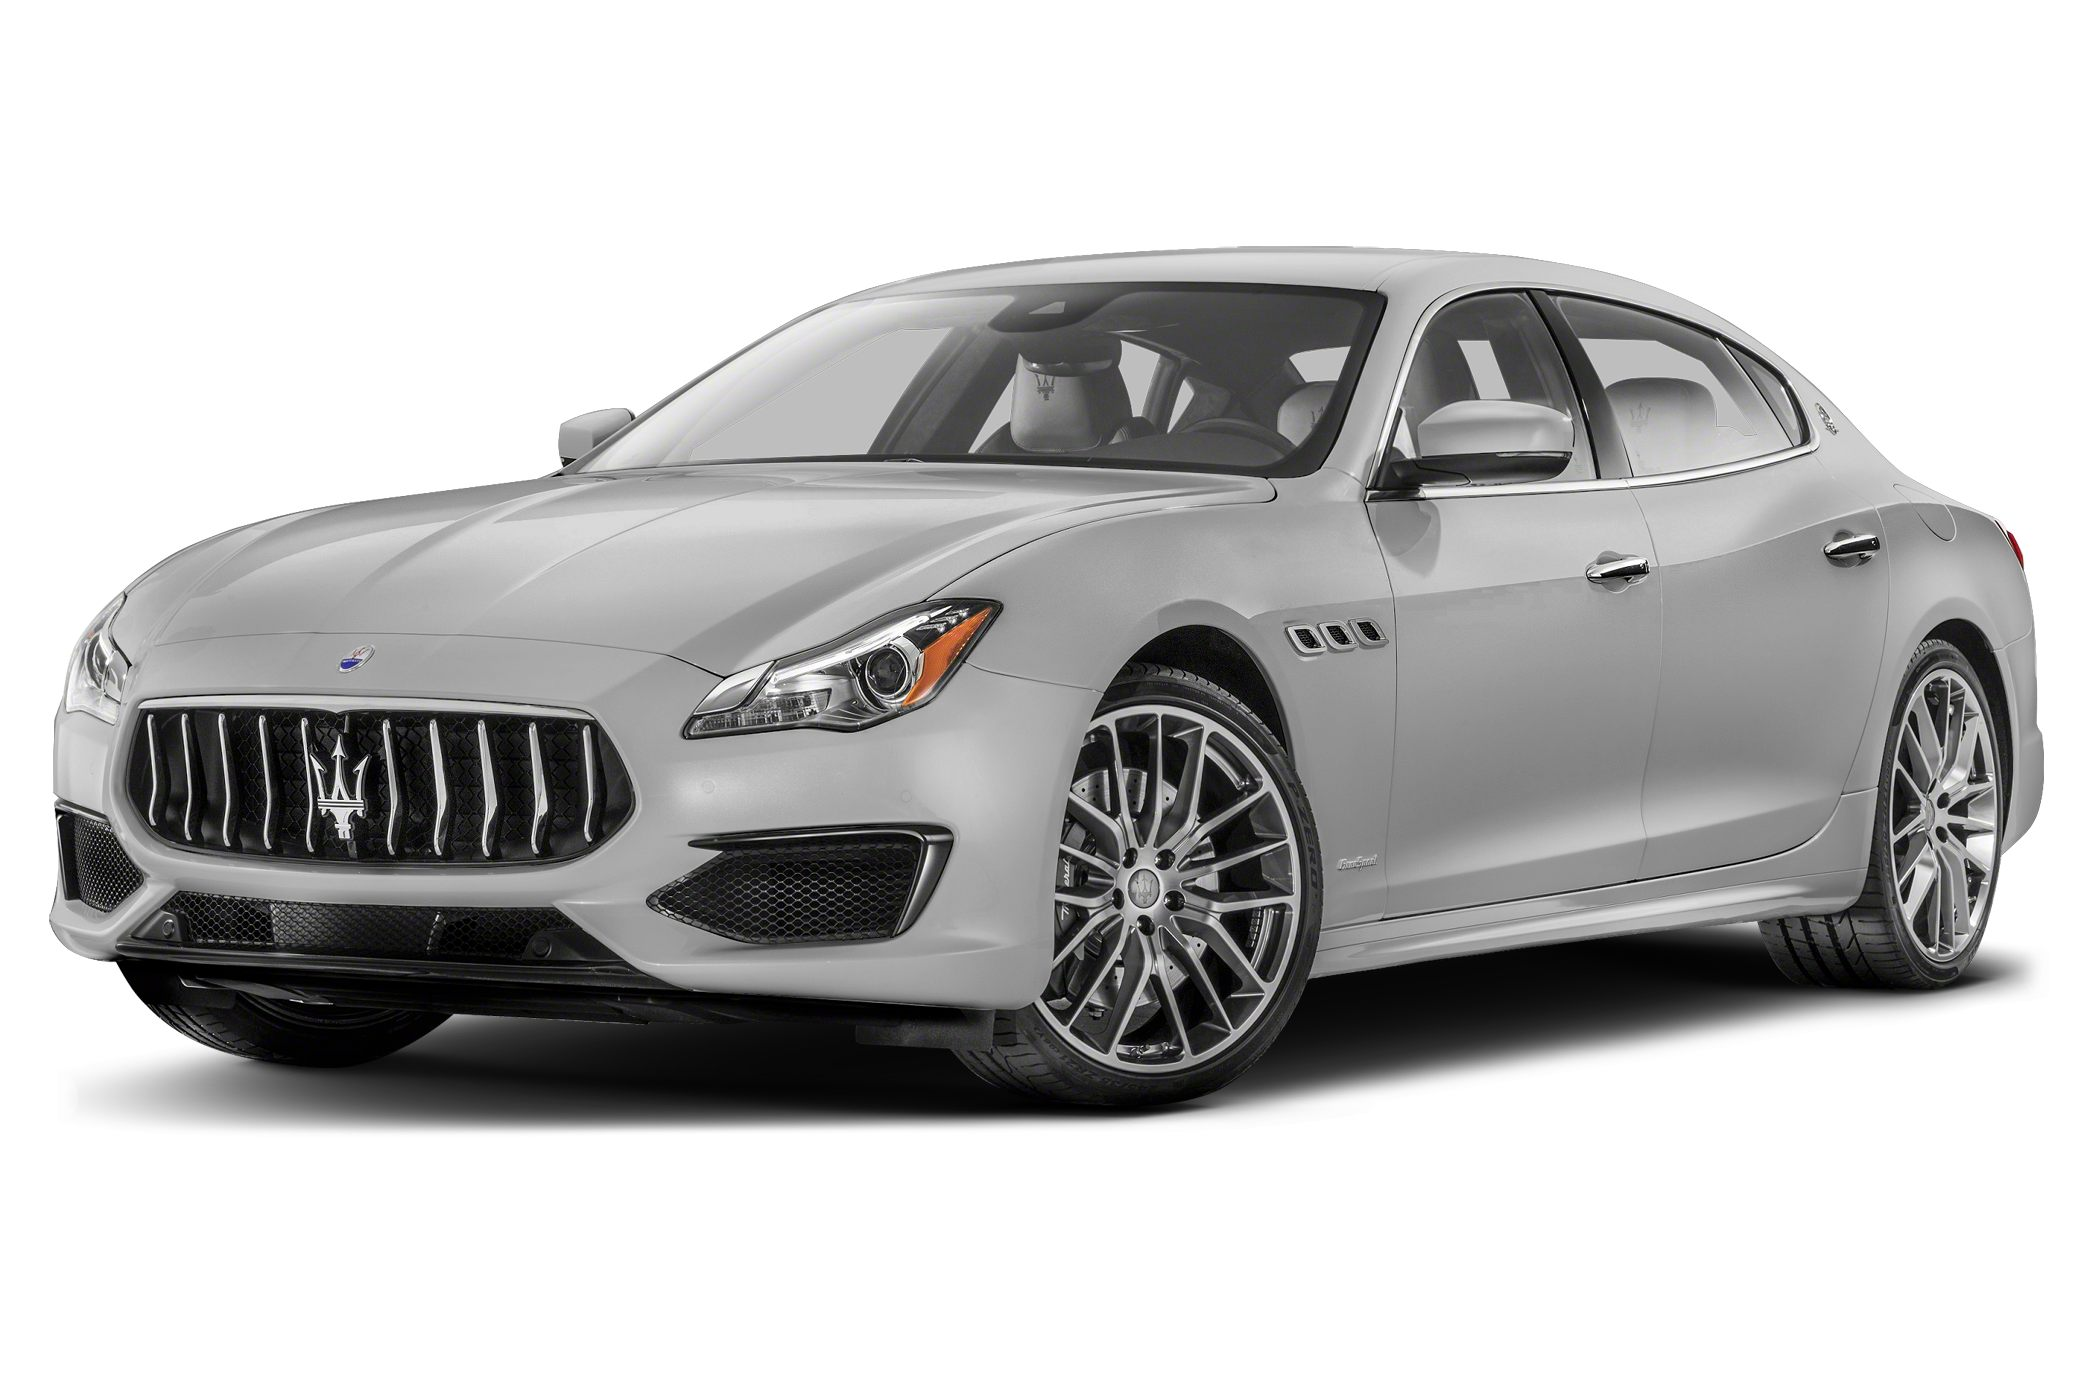 2017 maserati quattroporte maserati of albany. Black Bedroom Furniture Sets. Home Design Ideas